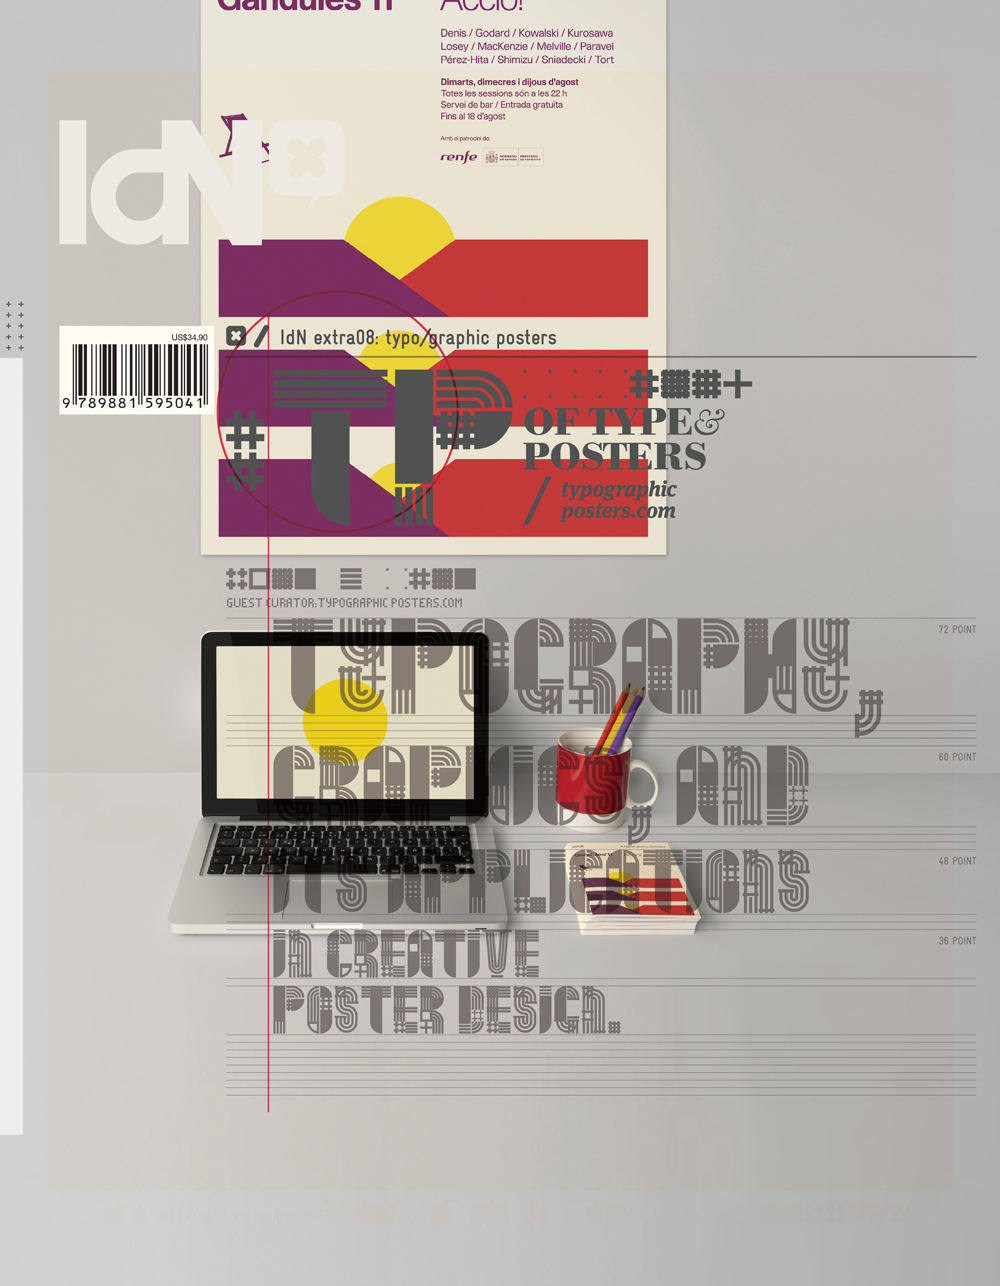 Data Typography, Graphics, and its Application in Creative Poster Design | IdN Extra 08: Typo/graphic Posters